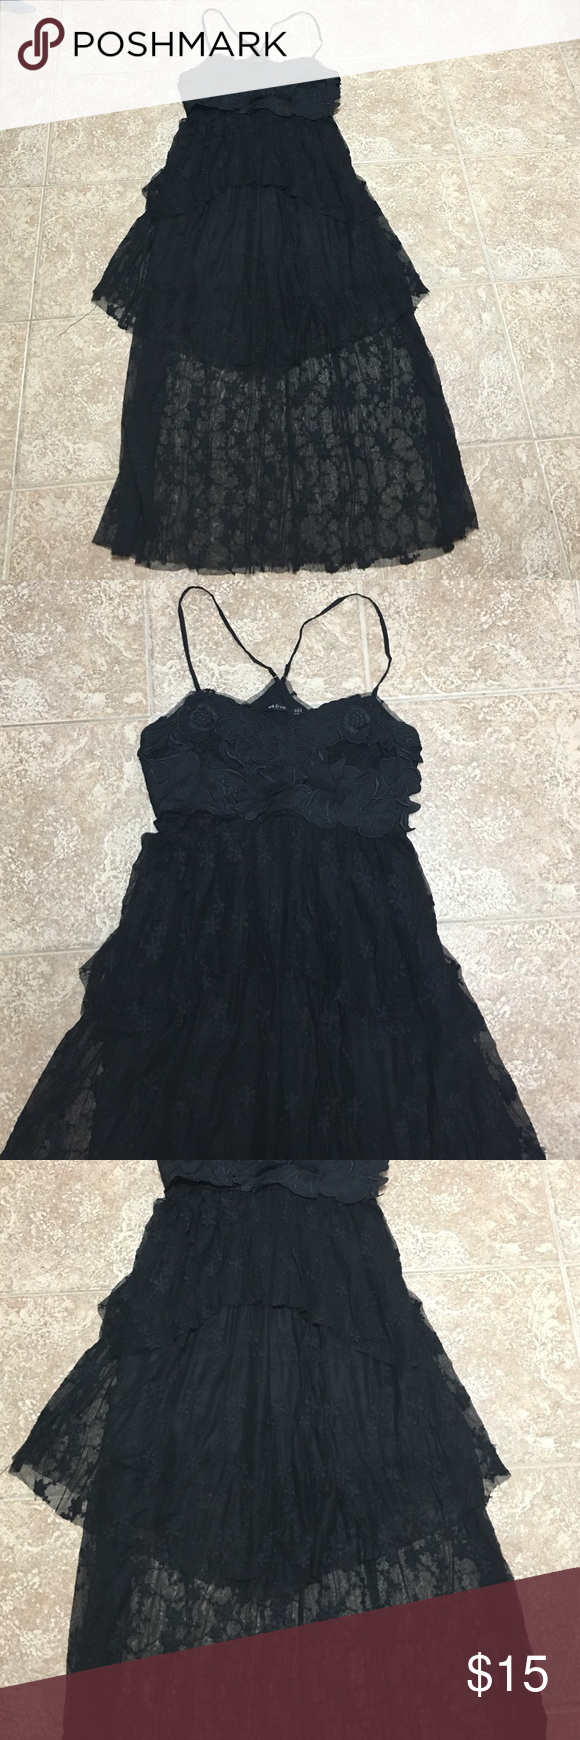 """""""Sheared"""" Lace Dress Beautiful dress with layers of lace throughout. Used one time. Keyhole opening on the back with a side zipper. Dresses"""